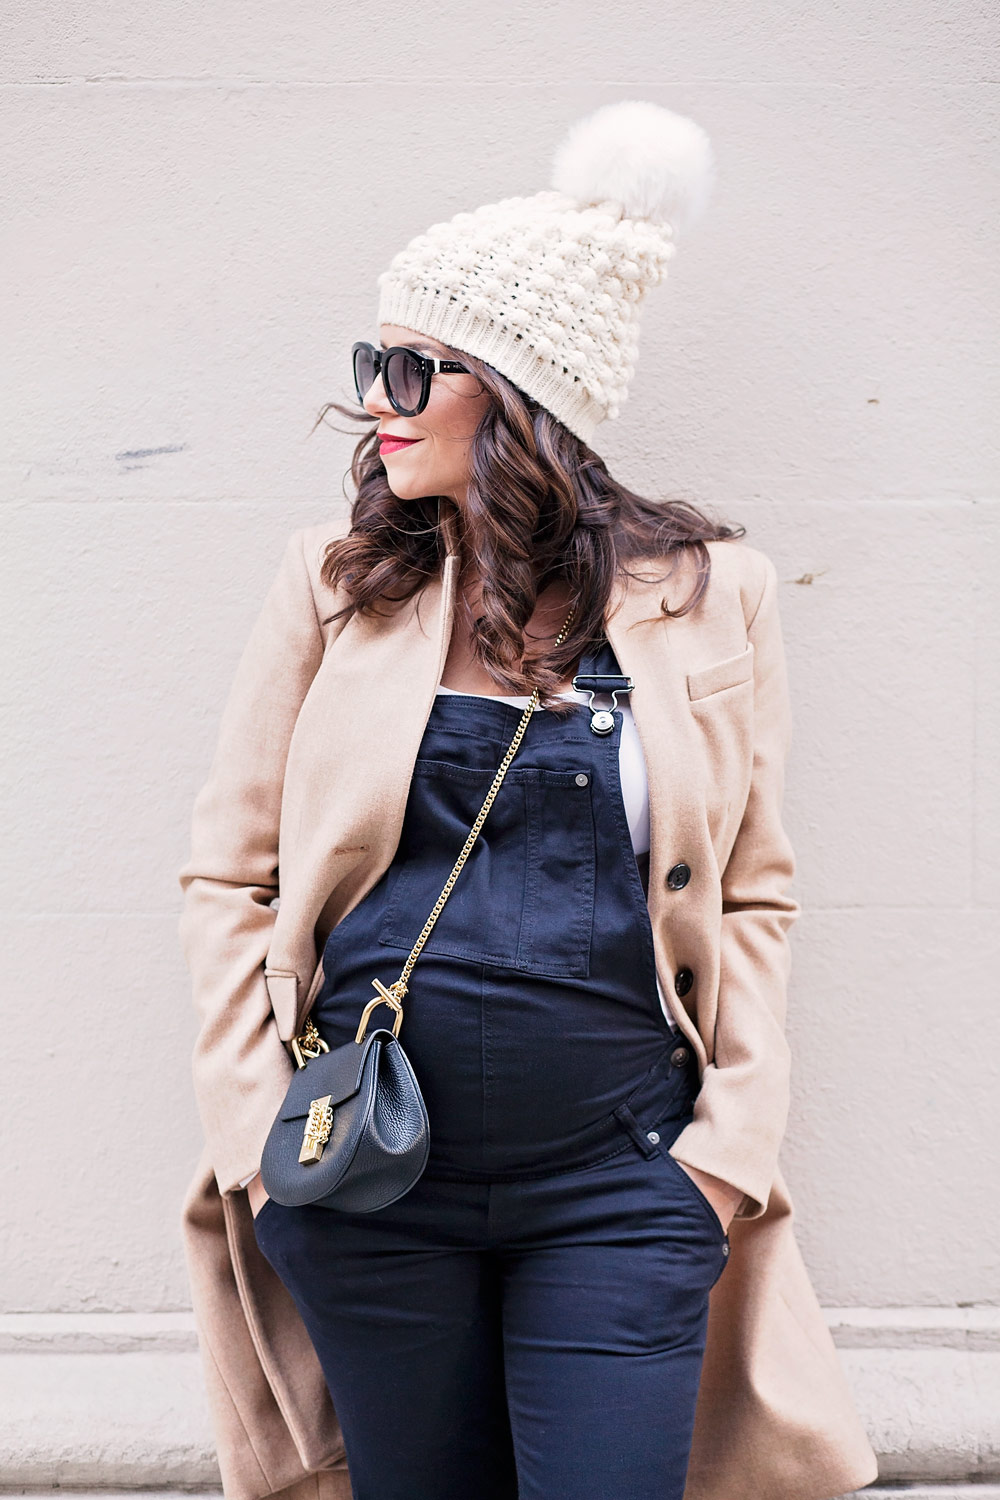 maternity-overalls-what-to-wear-when-expecting-nyc-expecting-layering-while-pregnant-maternity-fashion-dress-the-bump-overalls-corproate-catwalk-3